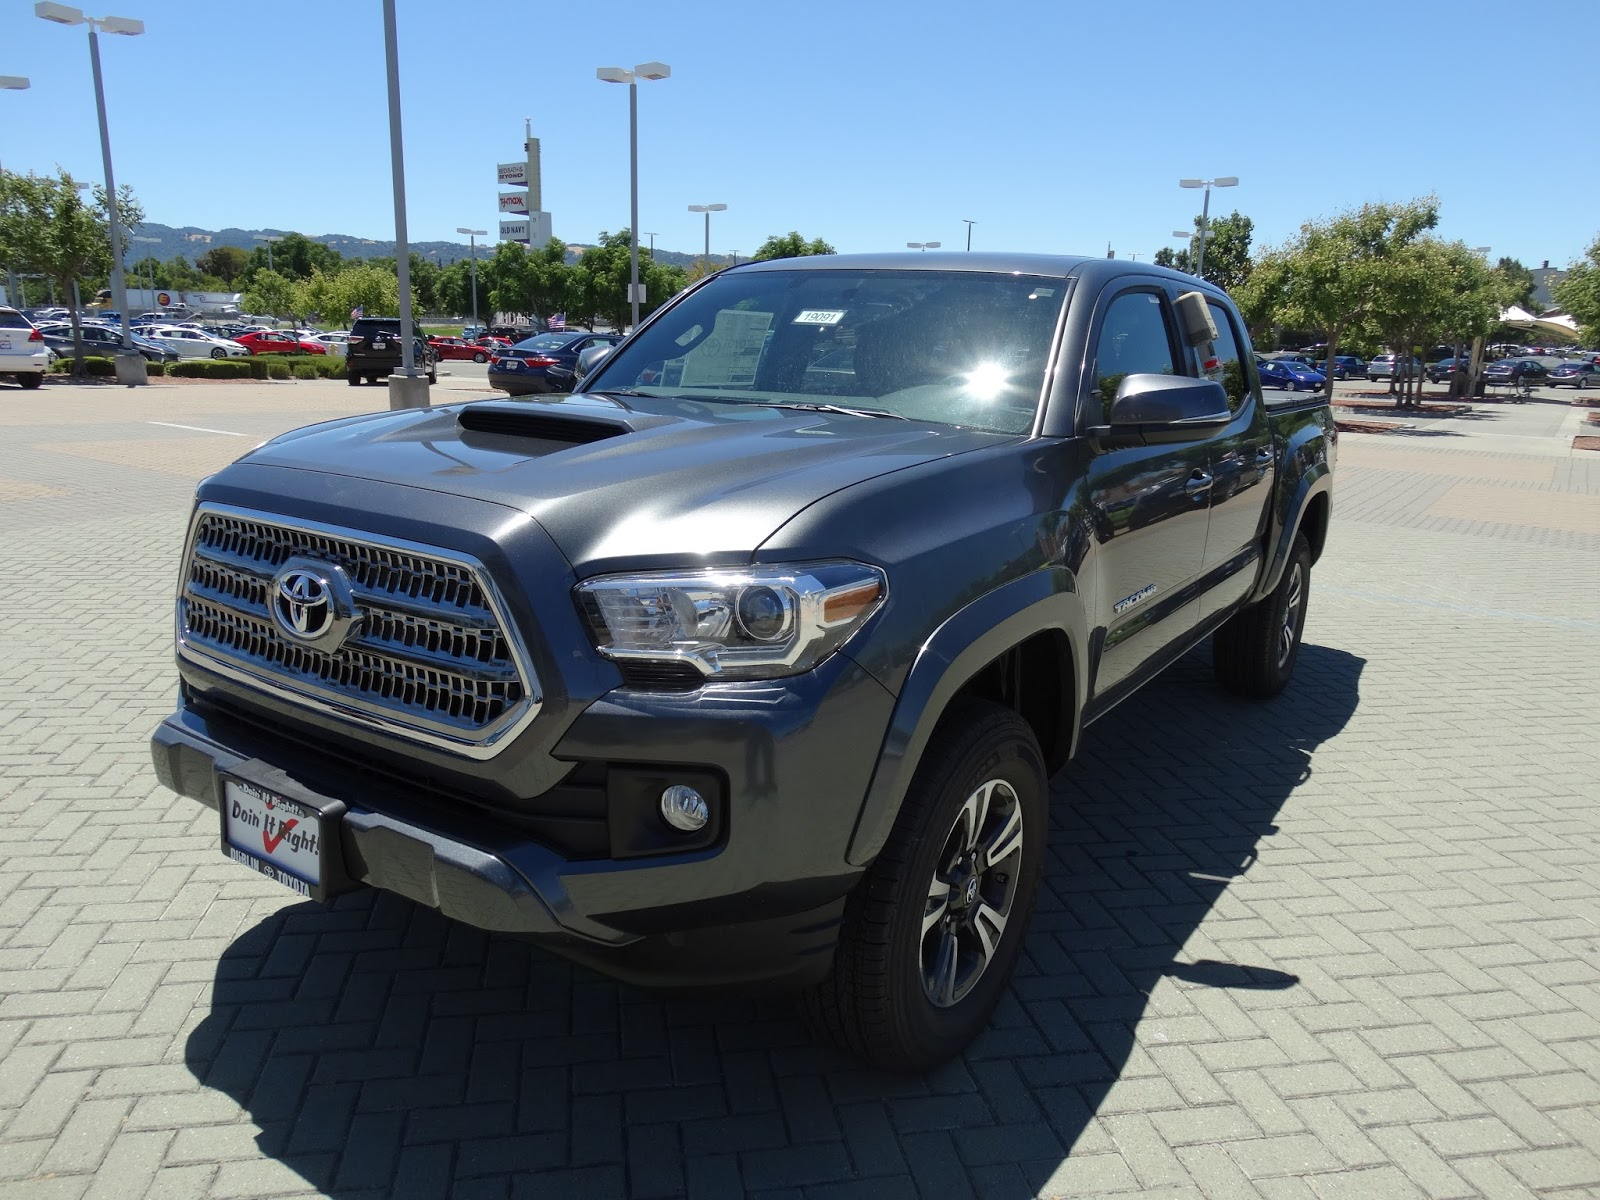 medium resolution of with 3 43 turns to lock the tacoma comes with a speed sensitive hydraulic assist rack and pinion power steering unit this tacoma here comes with an ect